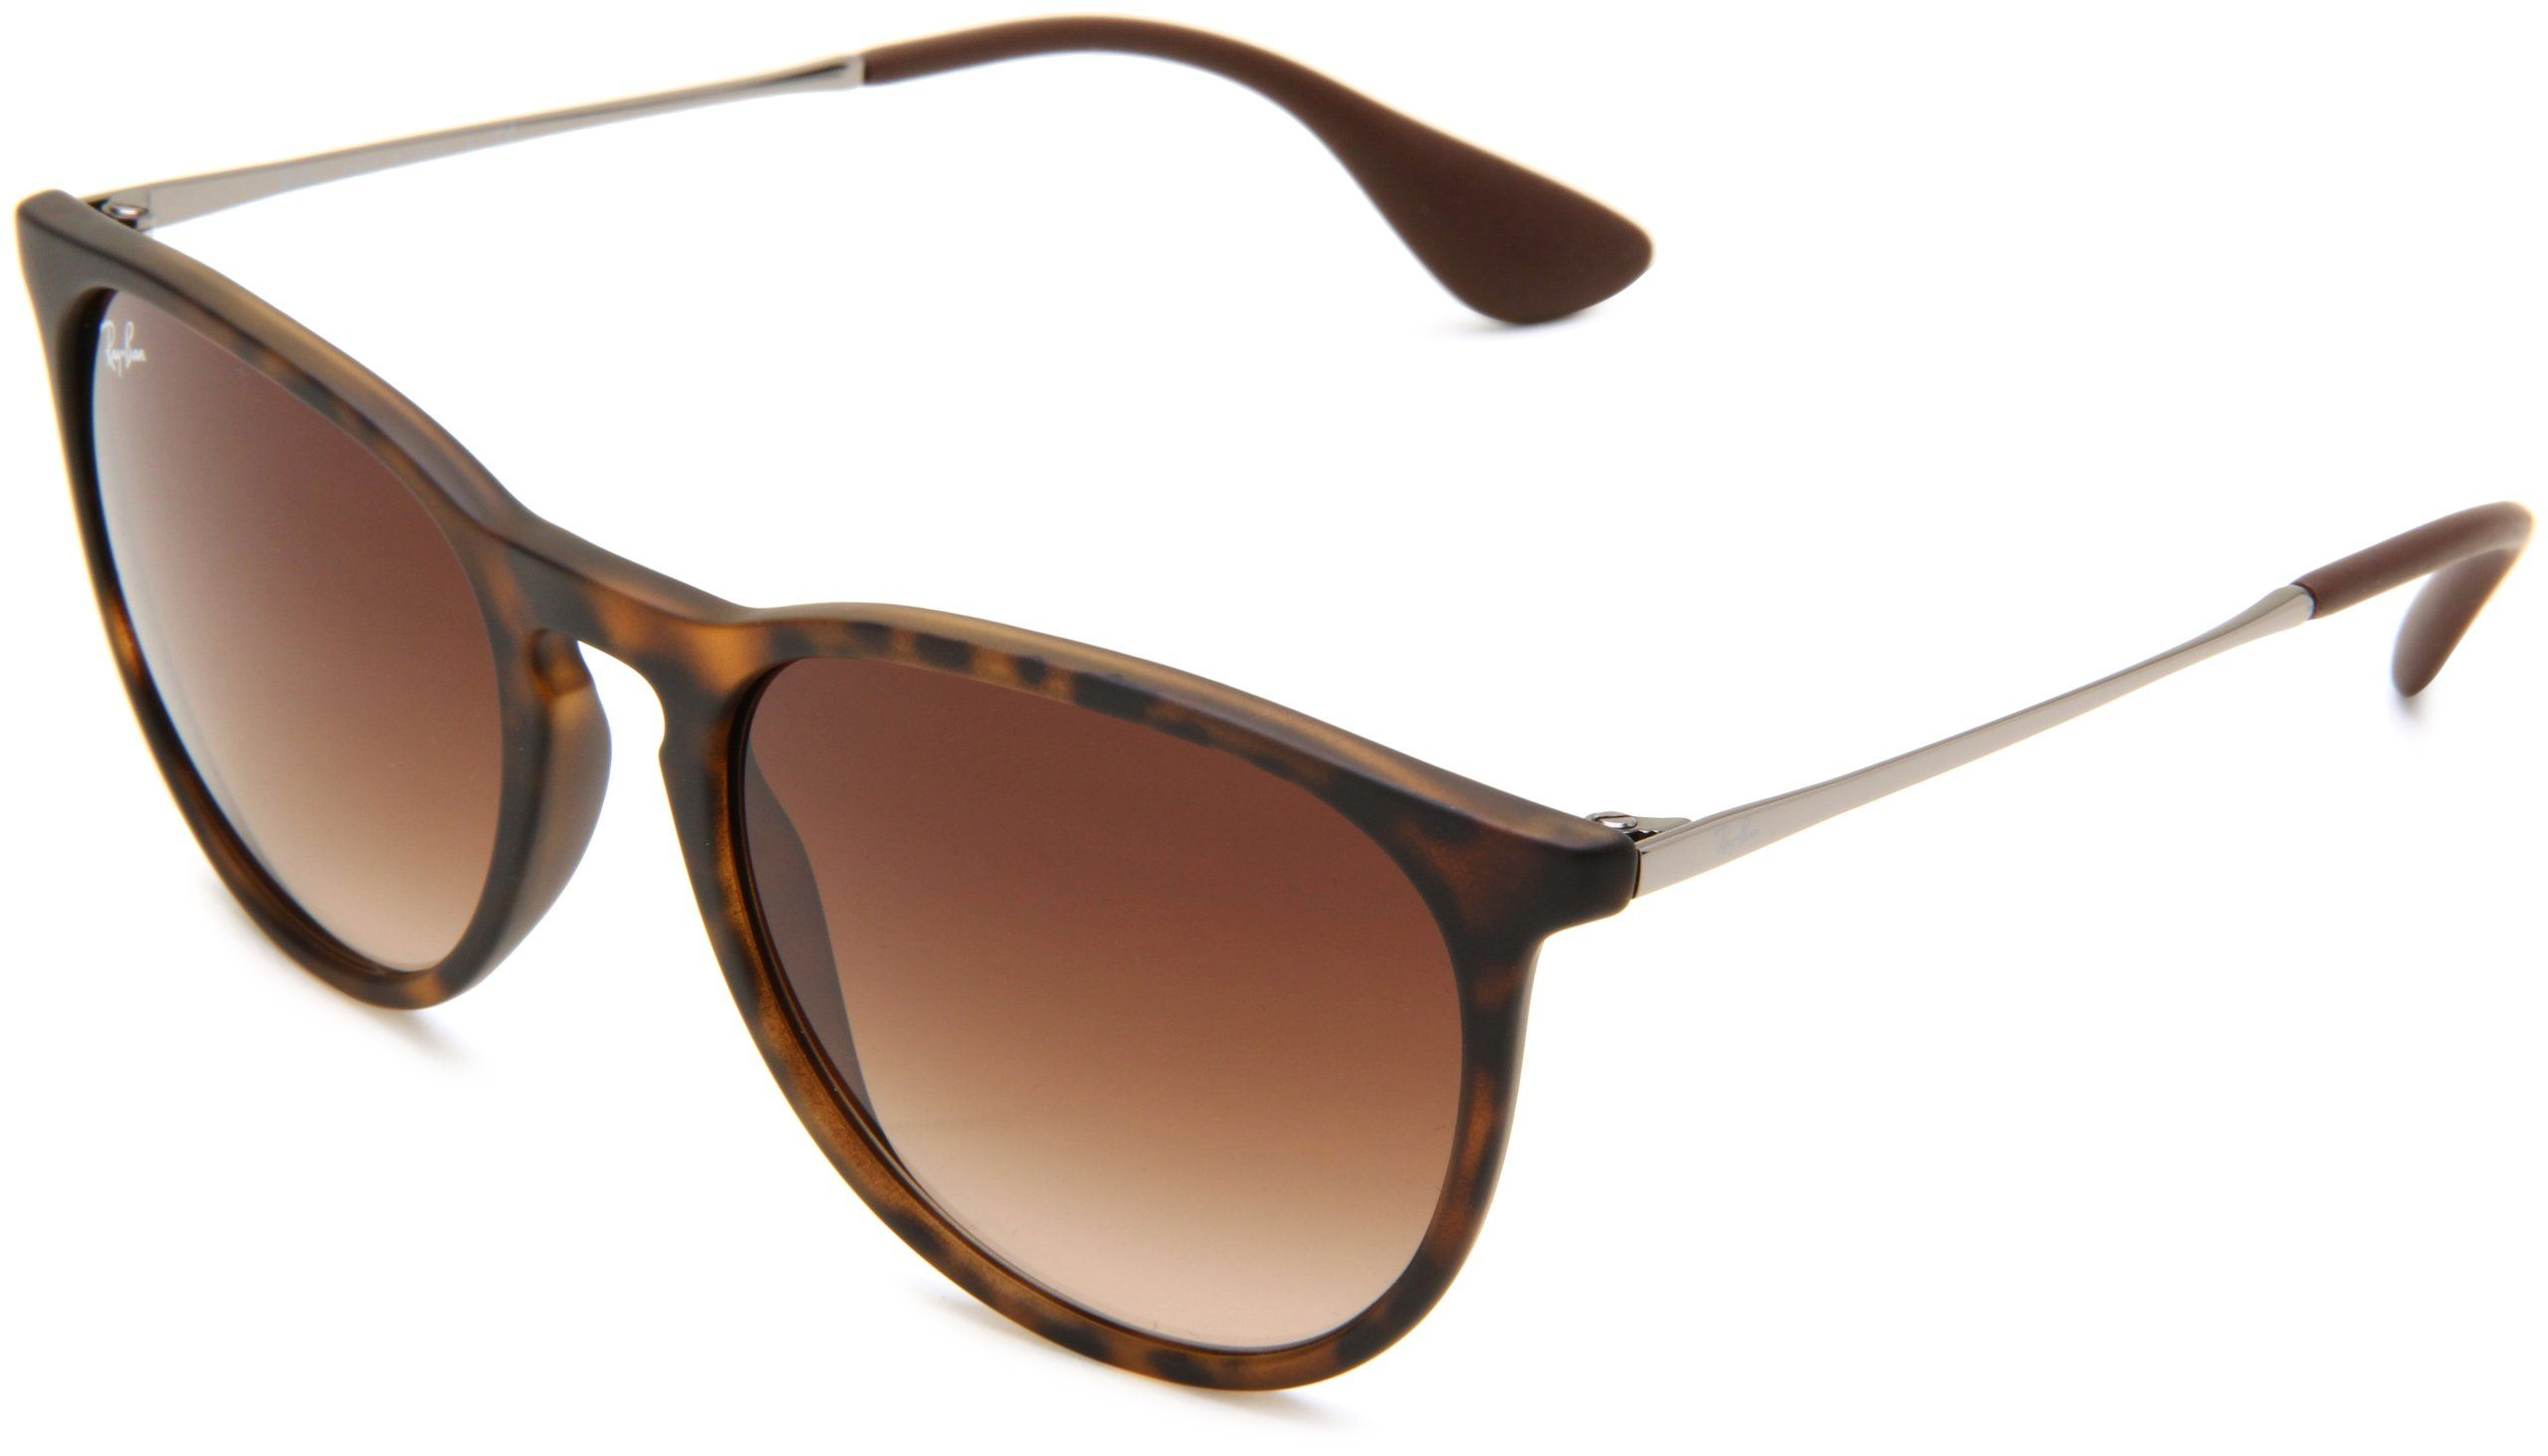 Amazon.com  Ray Ban RB4171 Erika Sunglasses-600068 Dark Rubber Sand (Brown  Grad Lens)-54mm  Ray-Ban  Shoes a4fd9b36ed